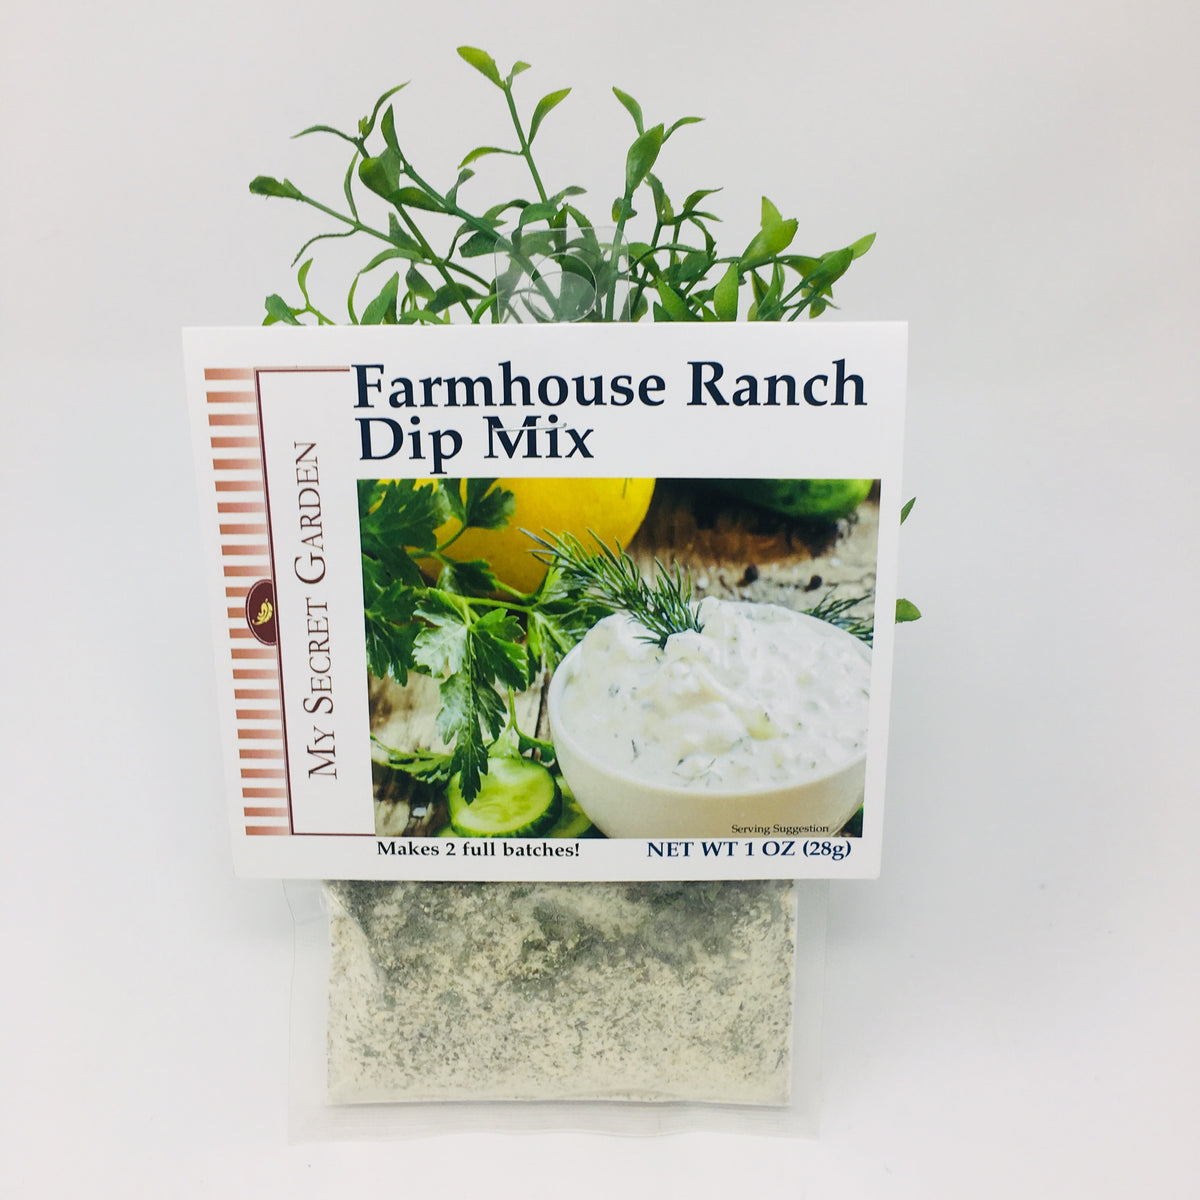 Farm House Ranch Dip Mix